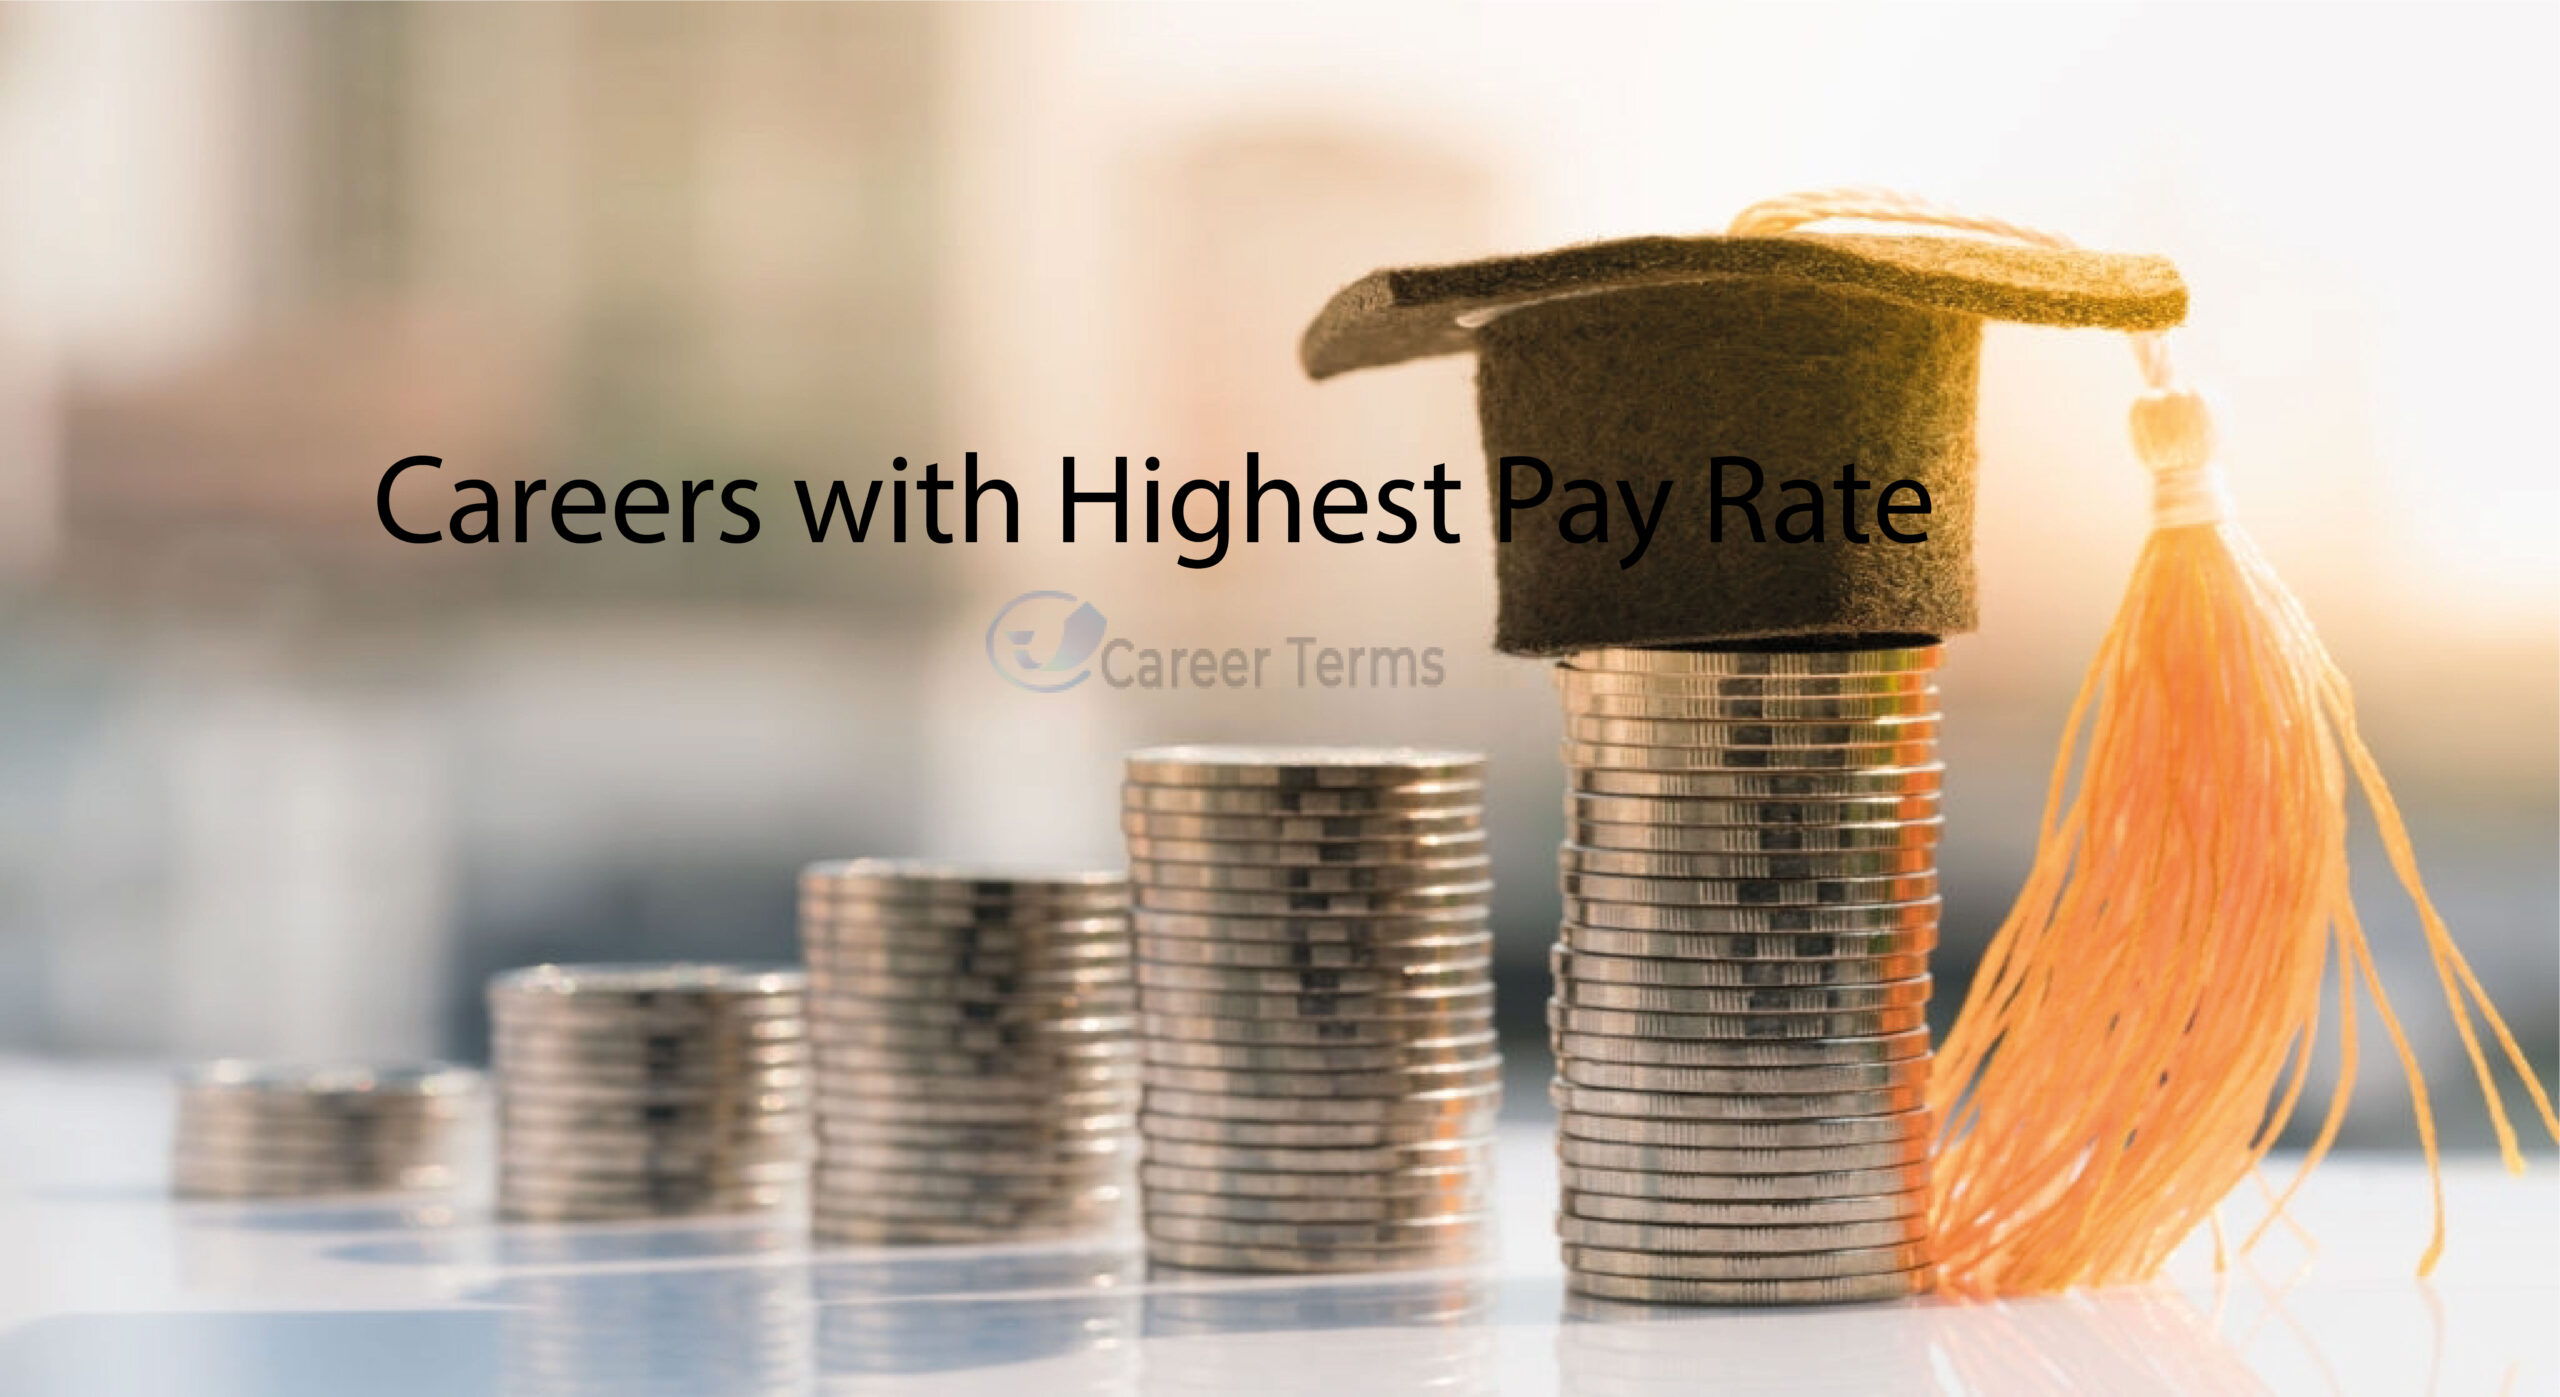 Careers with Highest Pay Rate